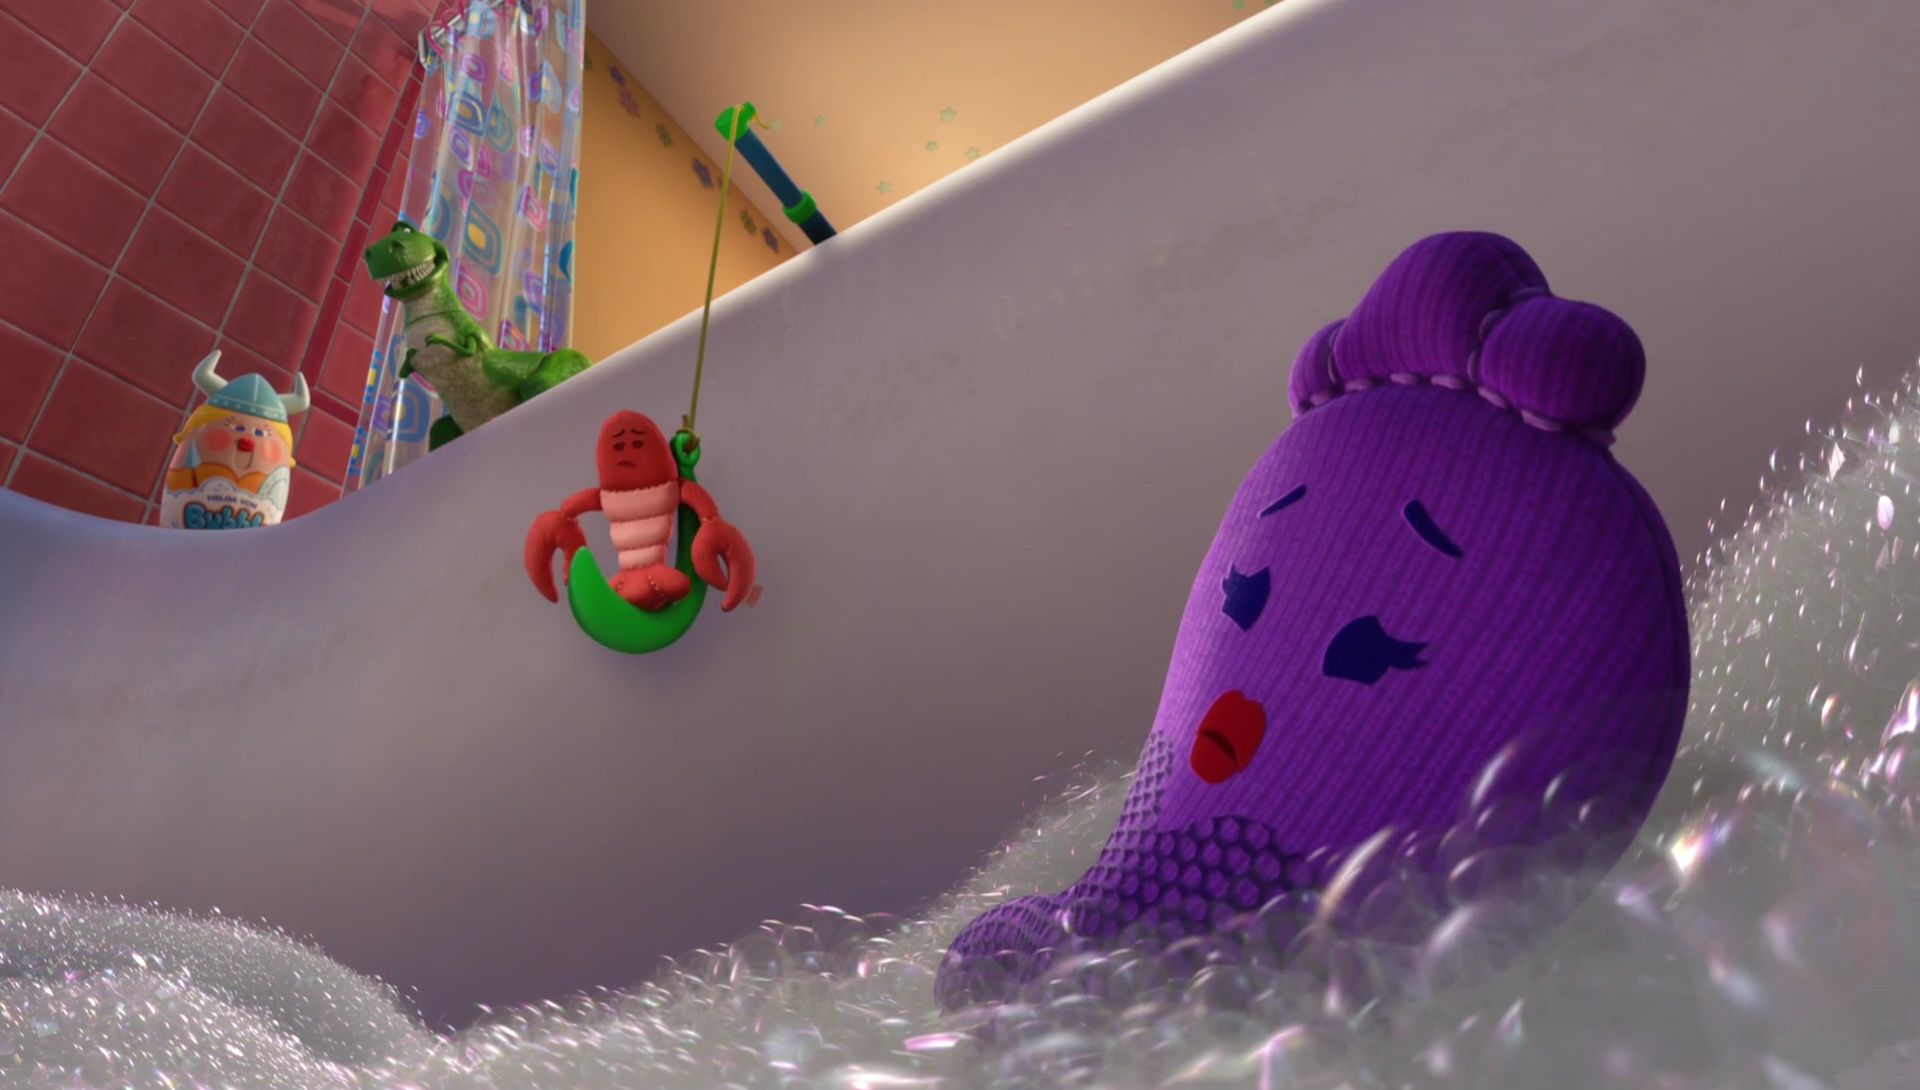 femme-homard-personnage-toy-story-toons-rex-roi-fete-01